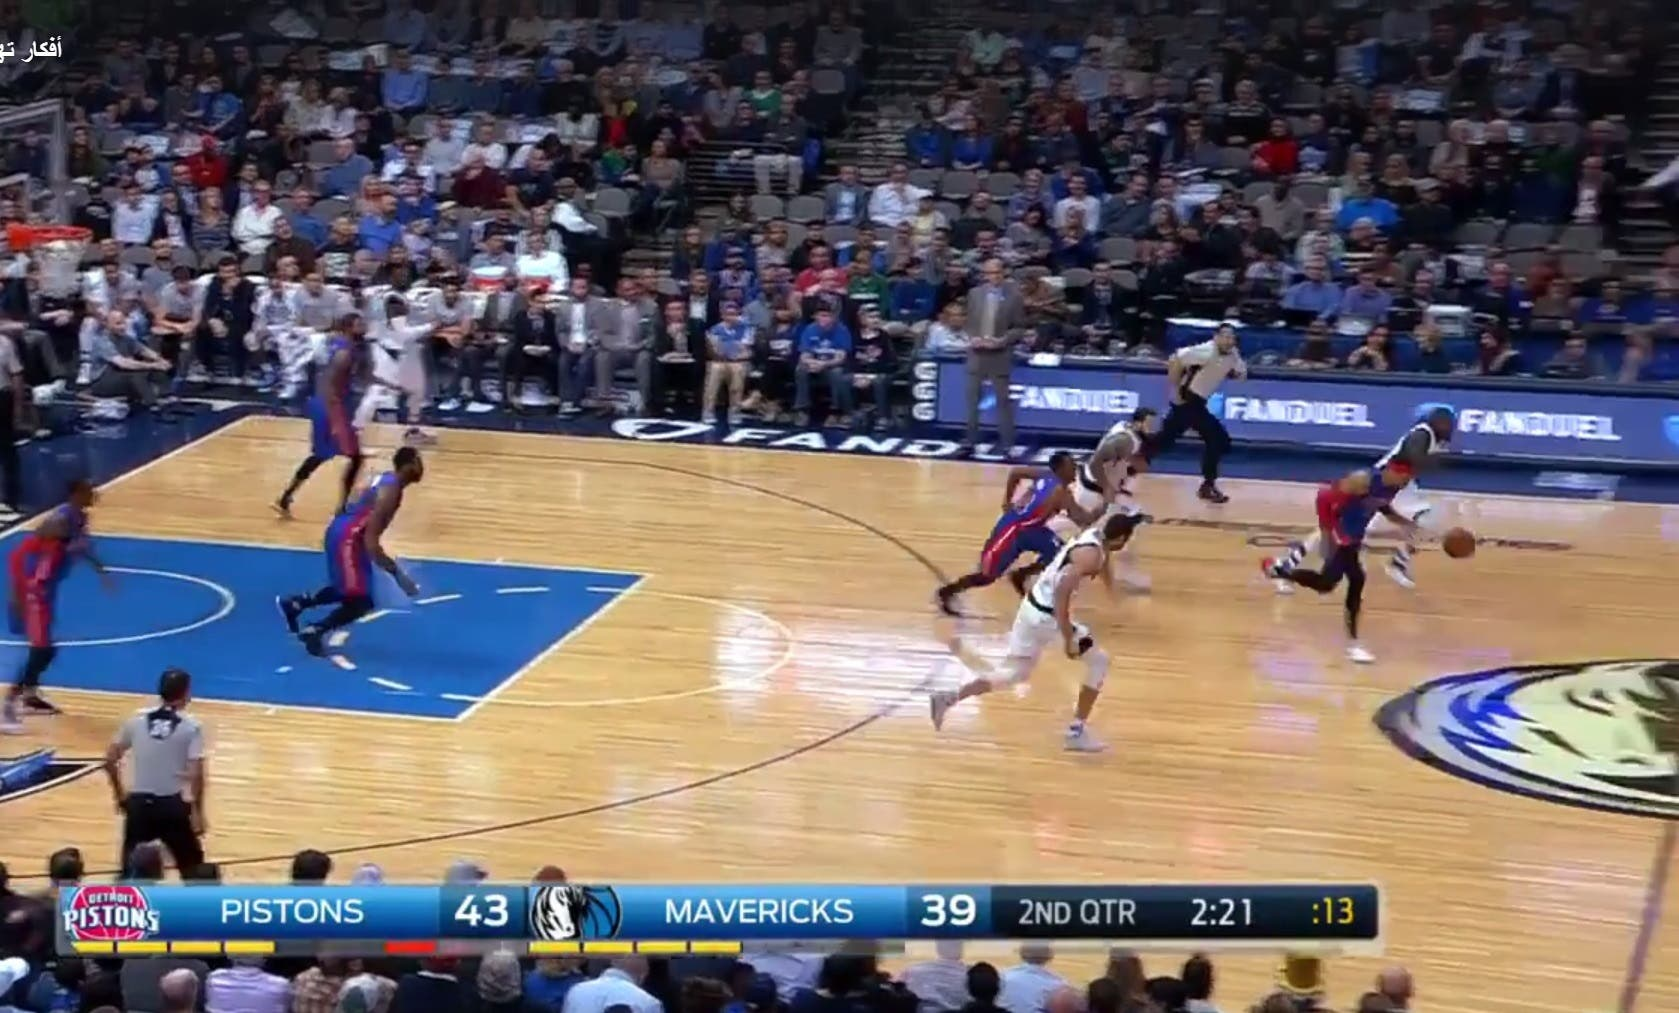 Pistons' Tobias Harris runs for the net in a quick counter attack. (Screengrab)